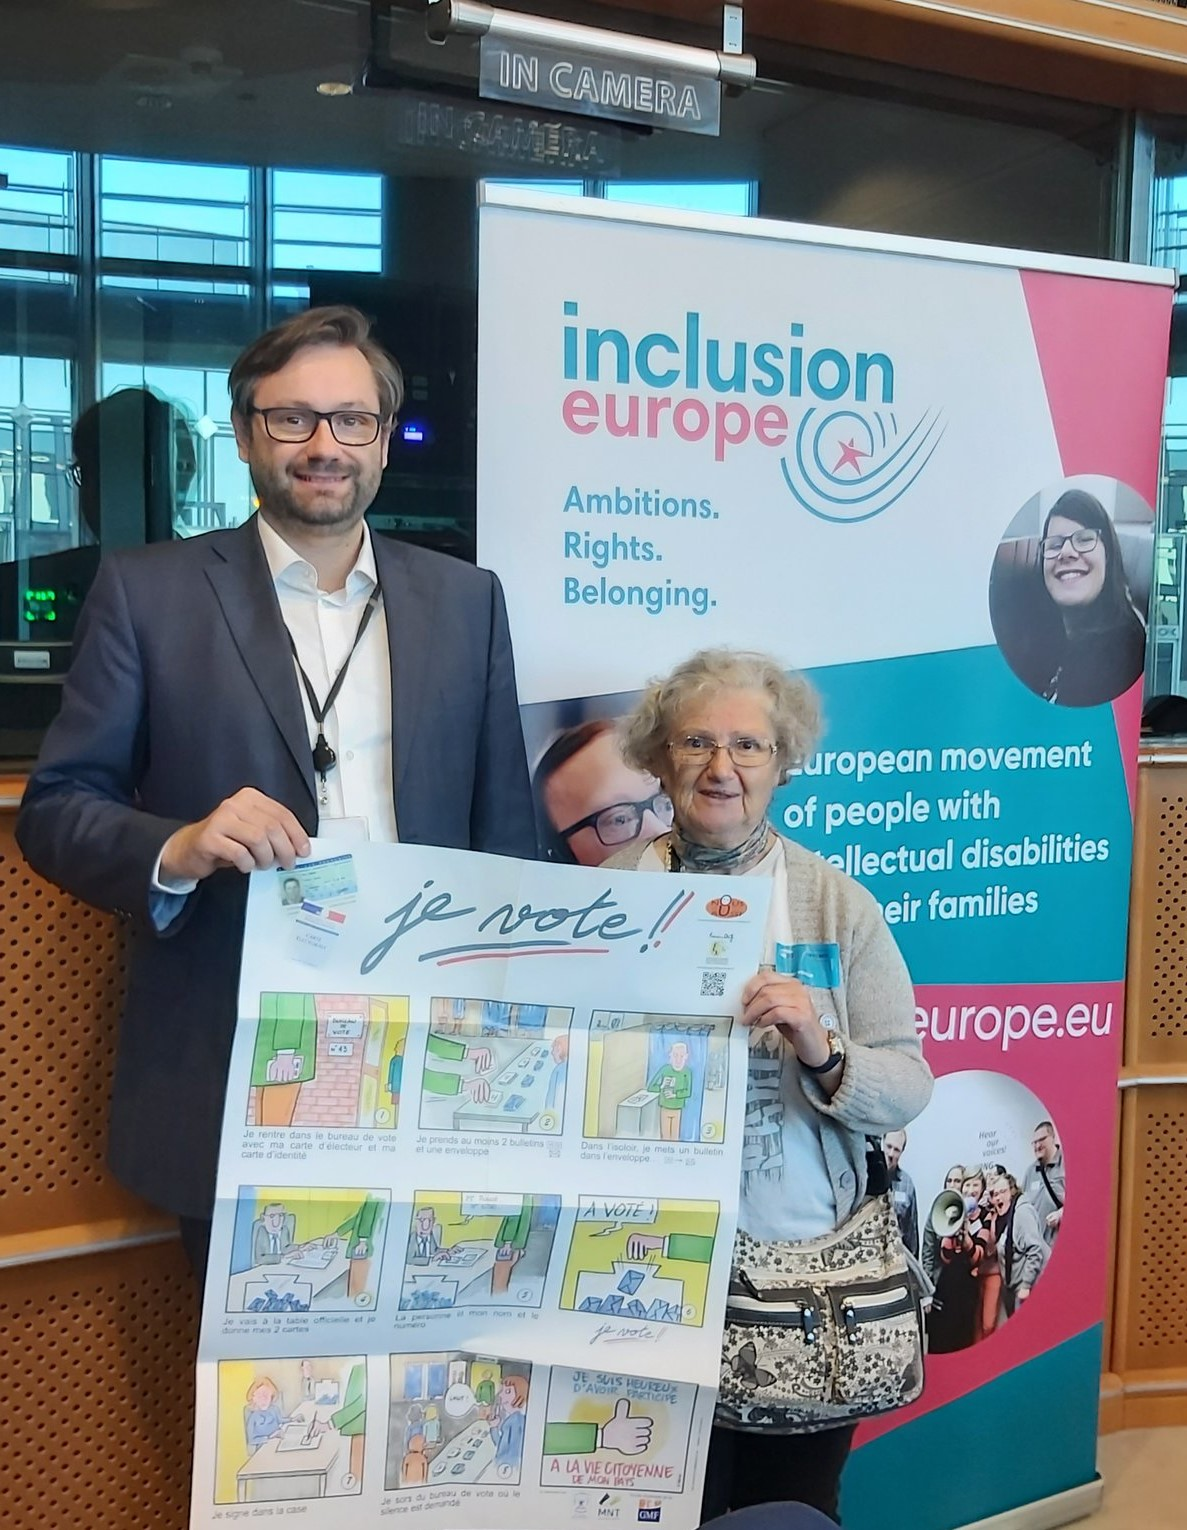 A tall man with glasses and an older woman with glasses standing in front of a banner, holding a poster